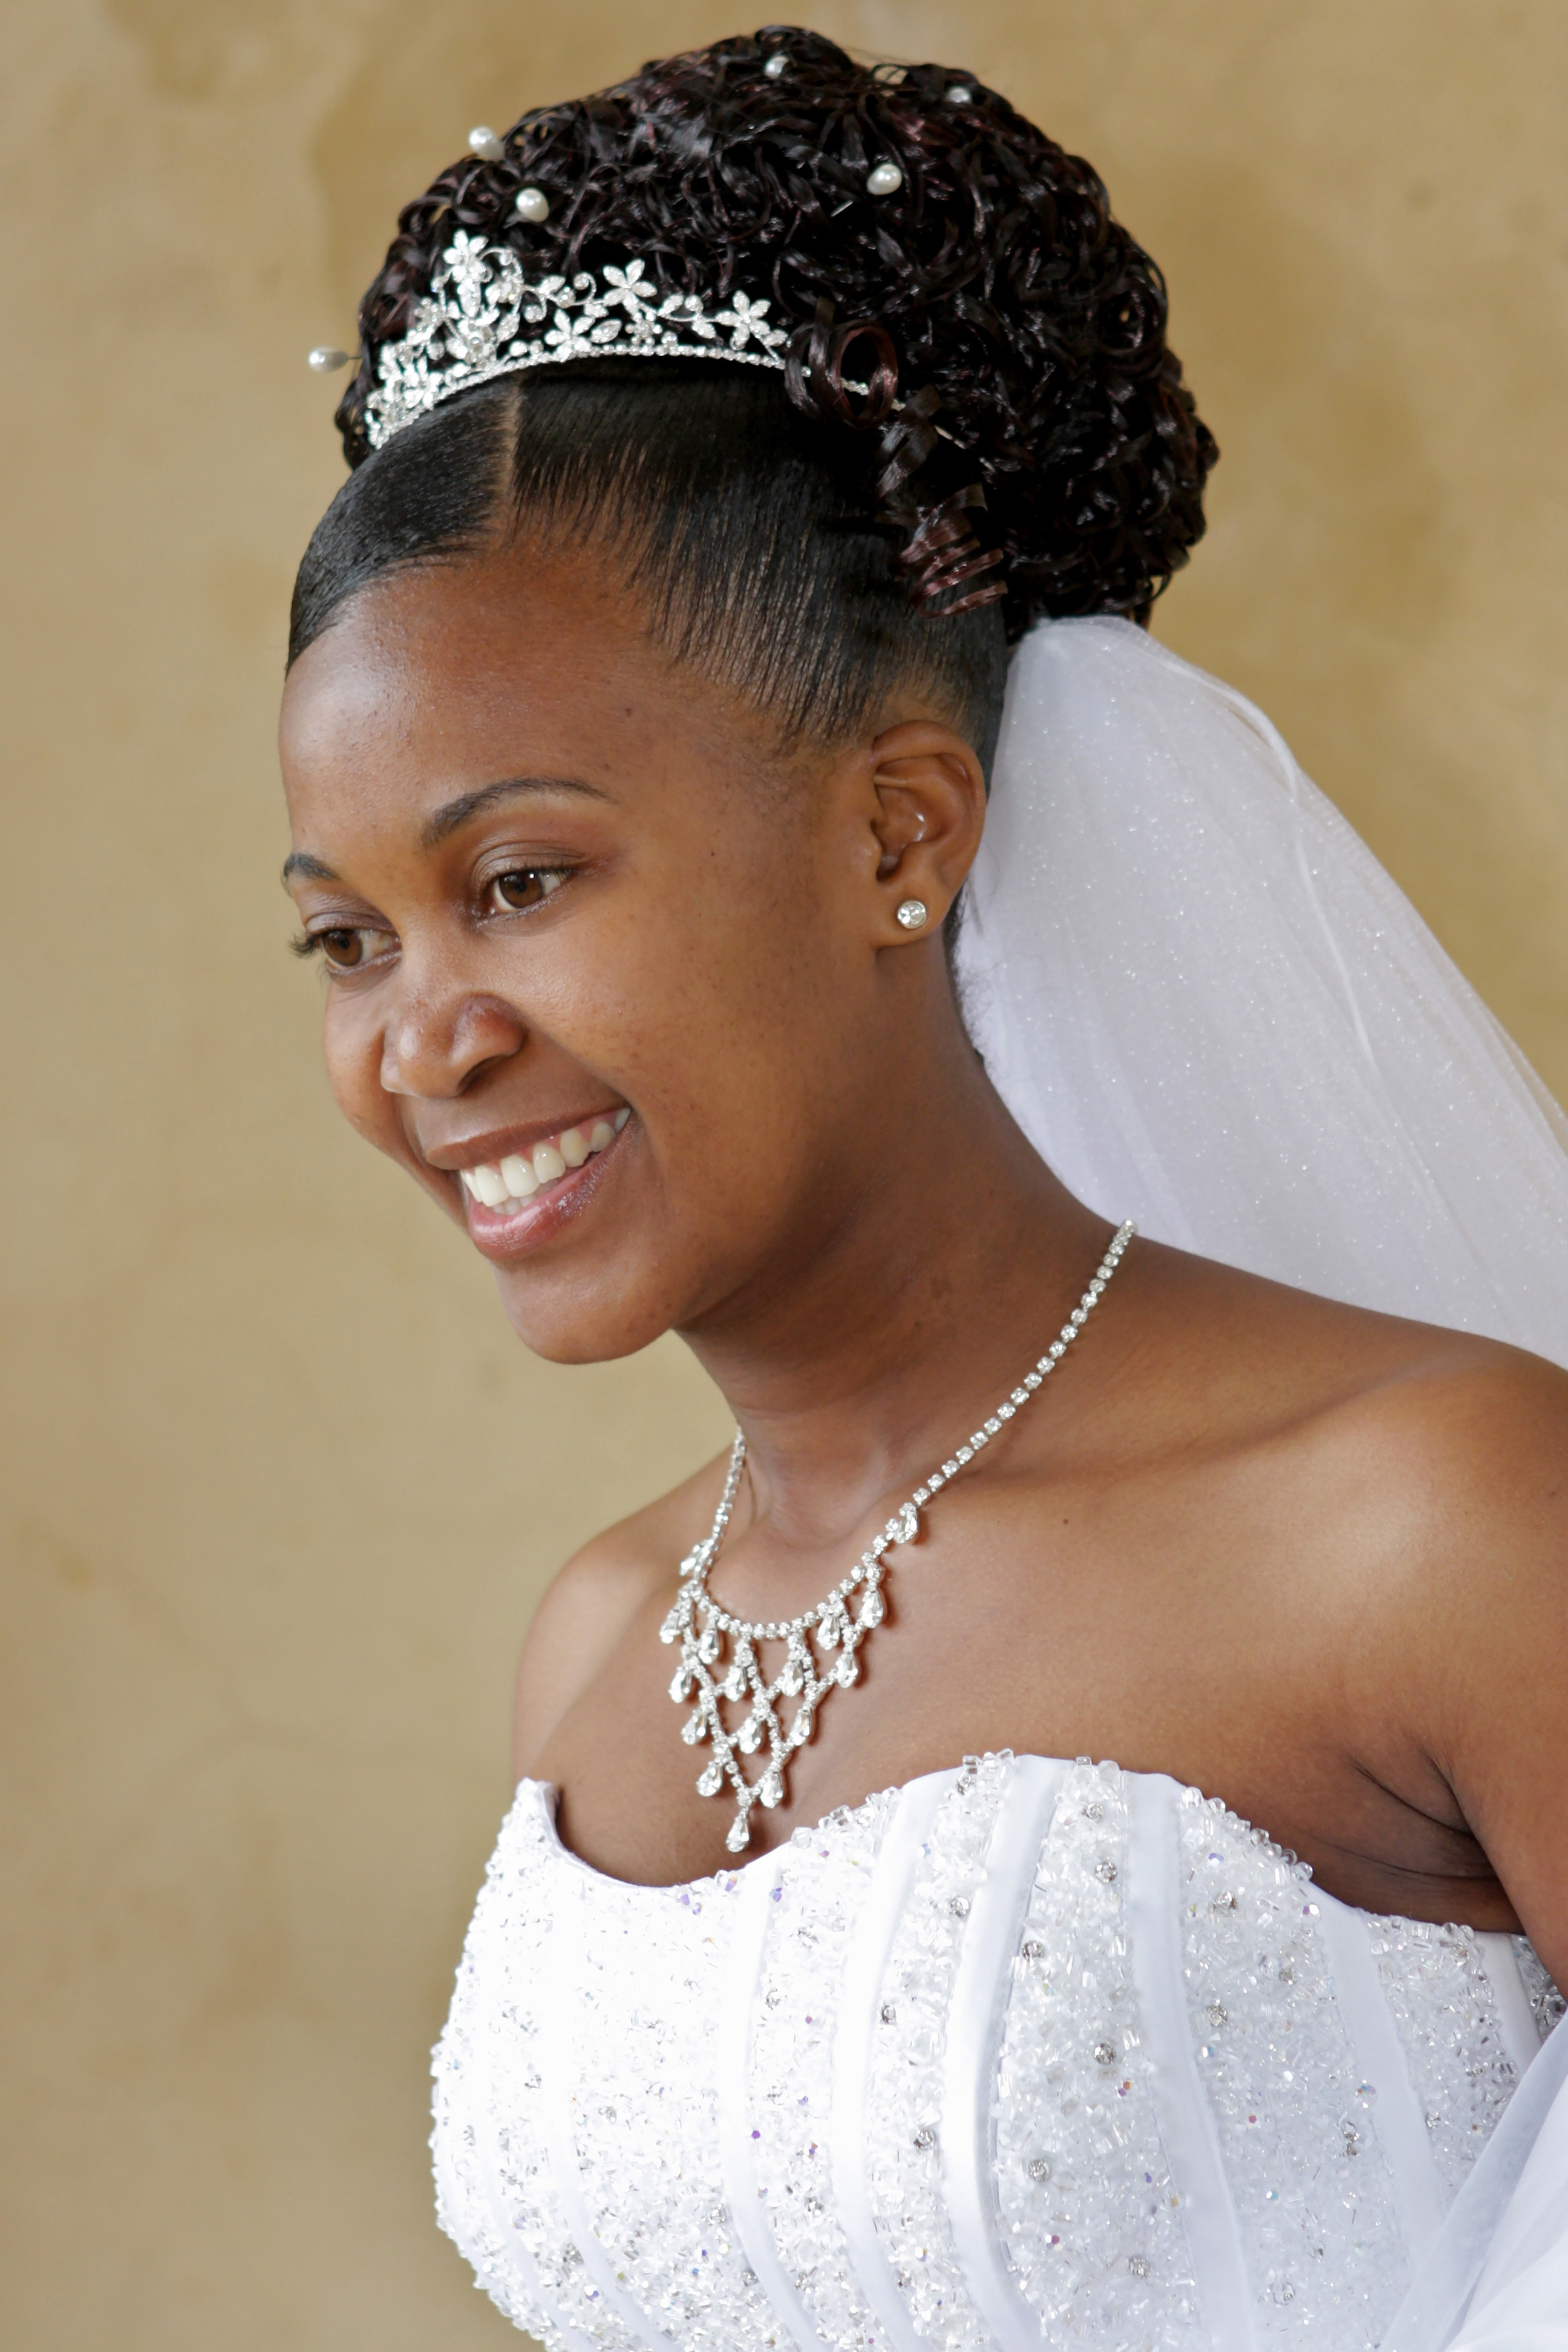 10 Best African Wedding Hairstyles For 2020 All Things Hair South Africa